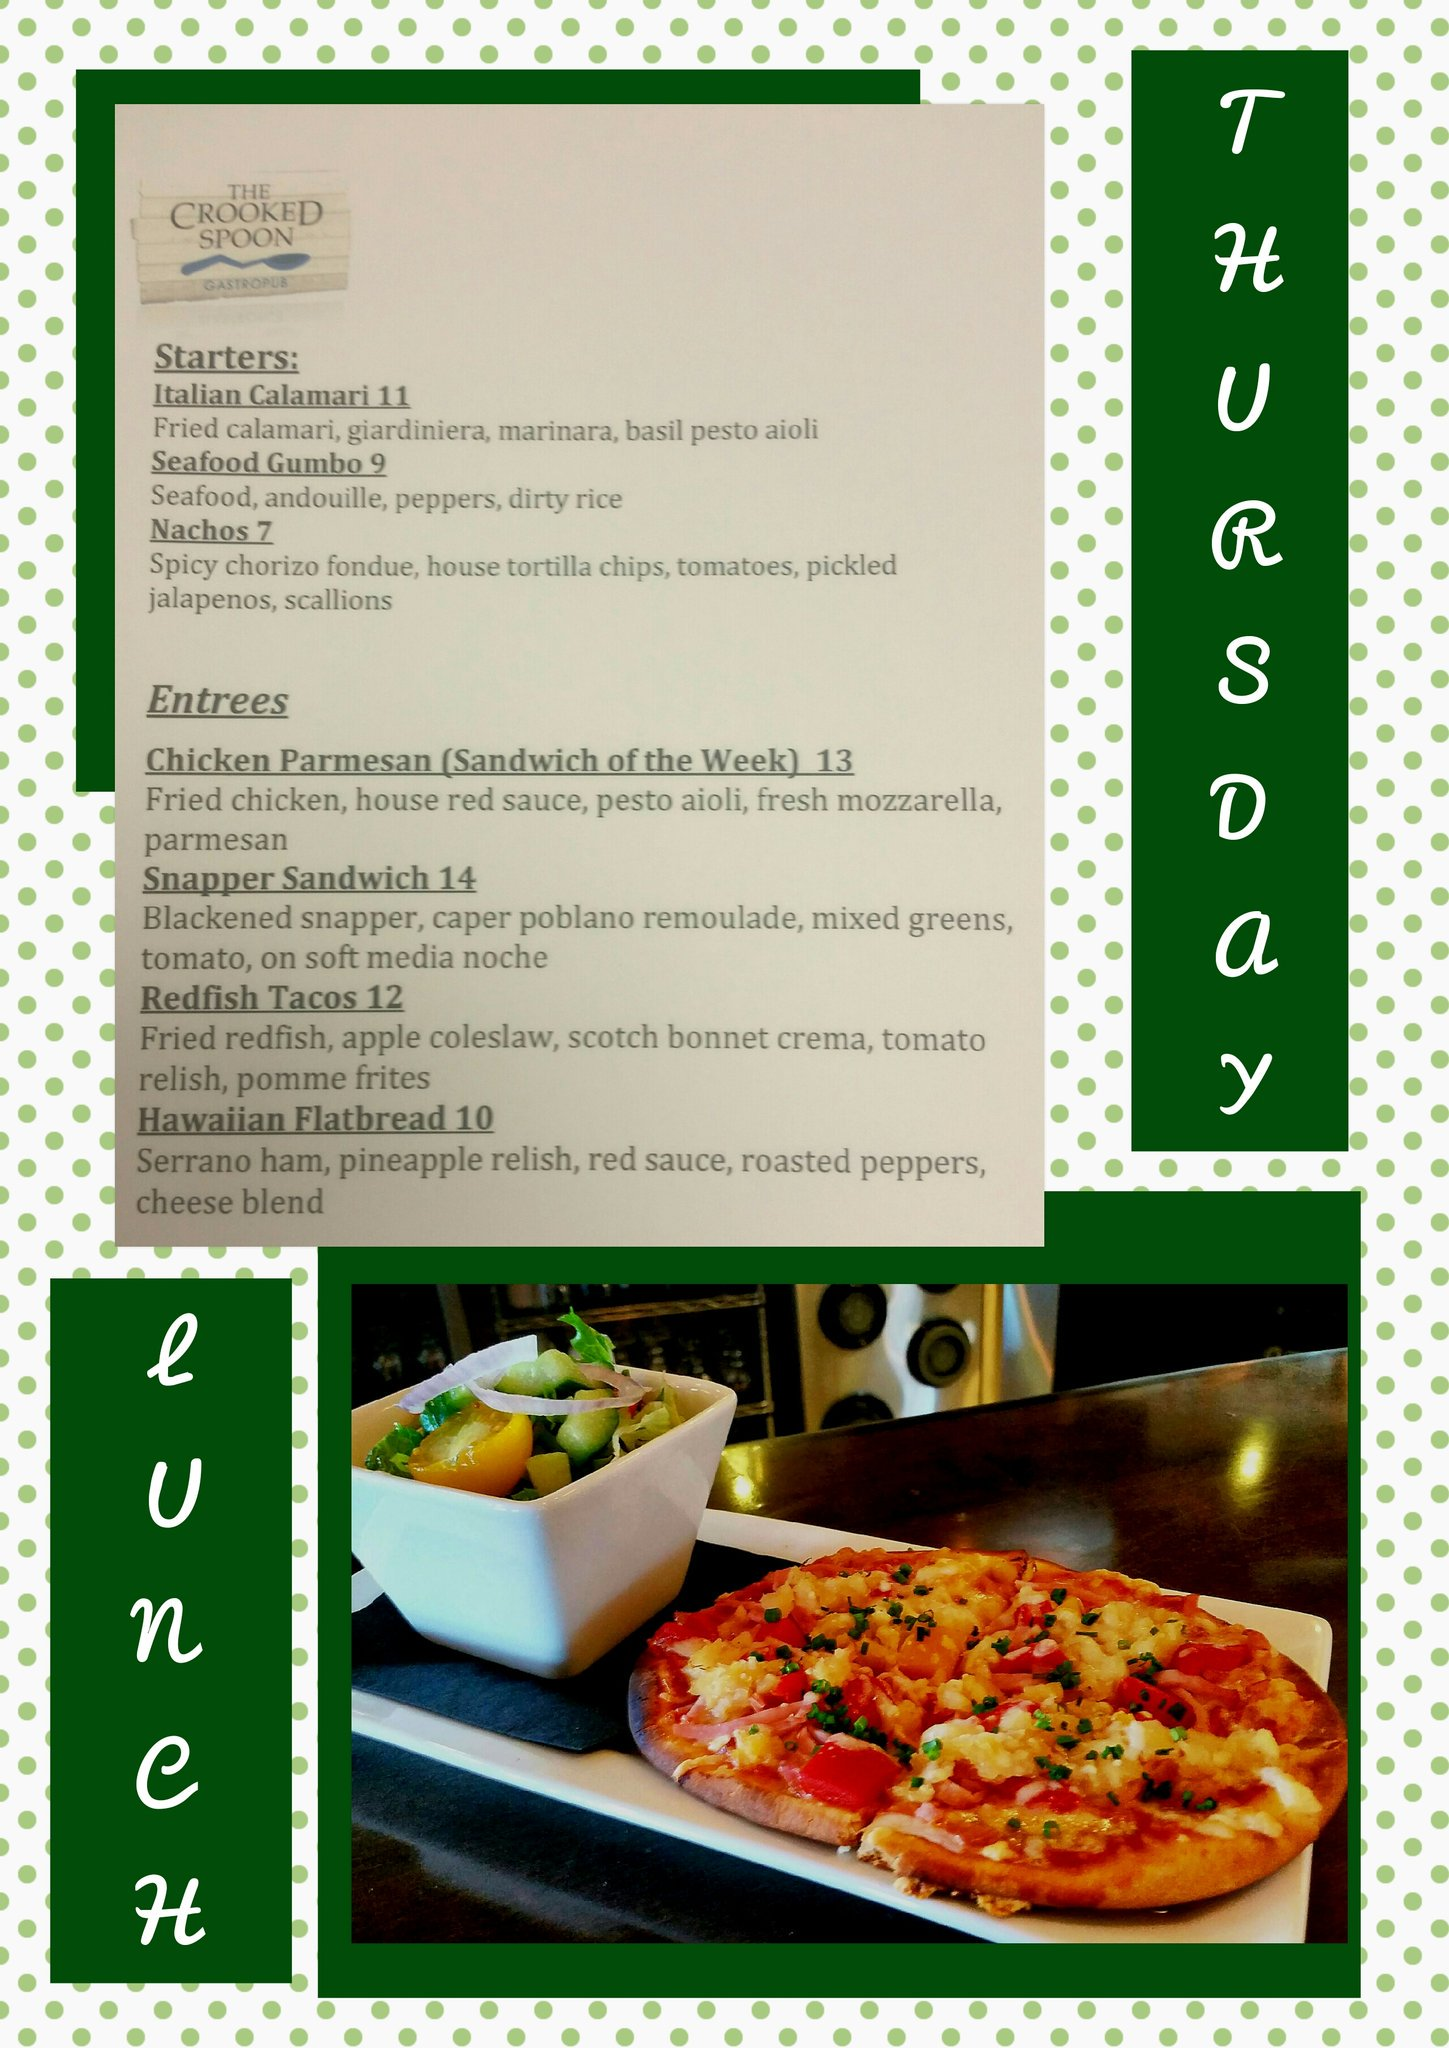 The Crooked Spoon On Twitter Thursday Lunch Specials